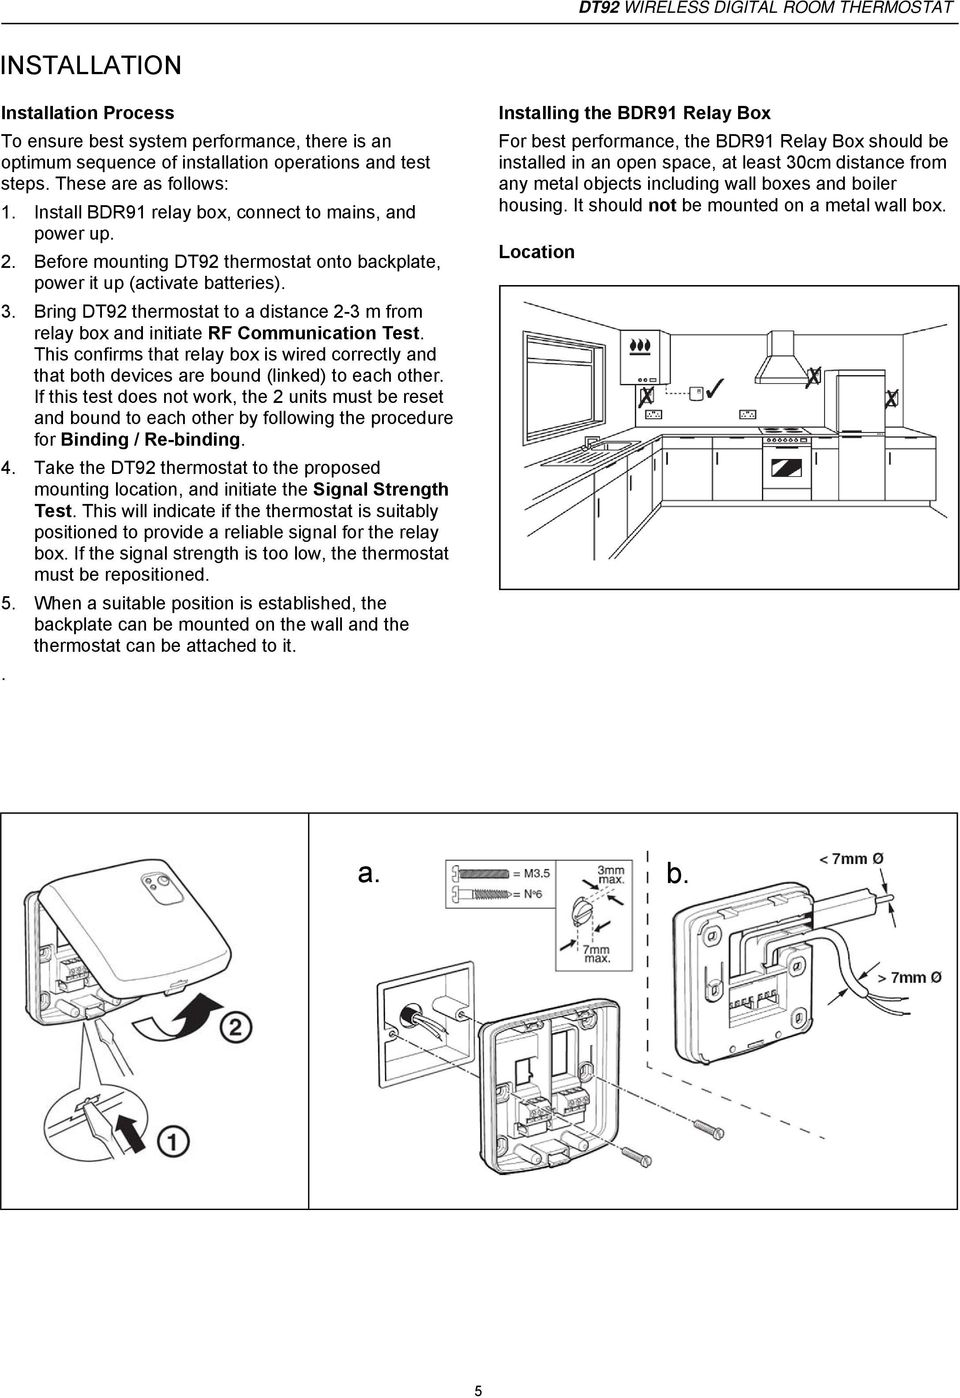 Dt92 Wireless Digital Room Thermostat Features Product Specification Wiring Diagram For Tado Bring To A Distance 2 3 M From Relay Box And Initiate Rf